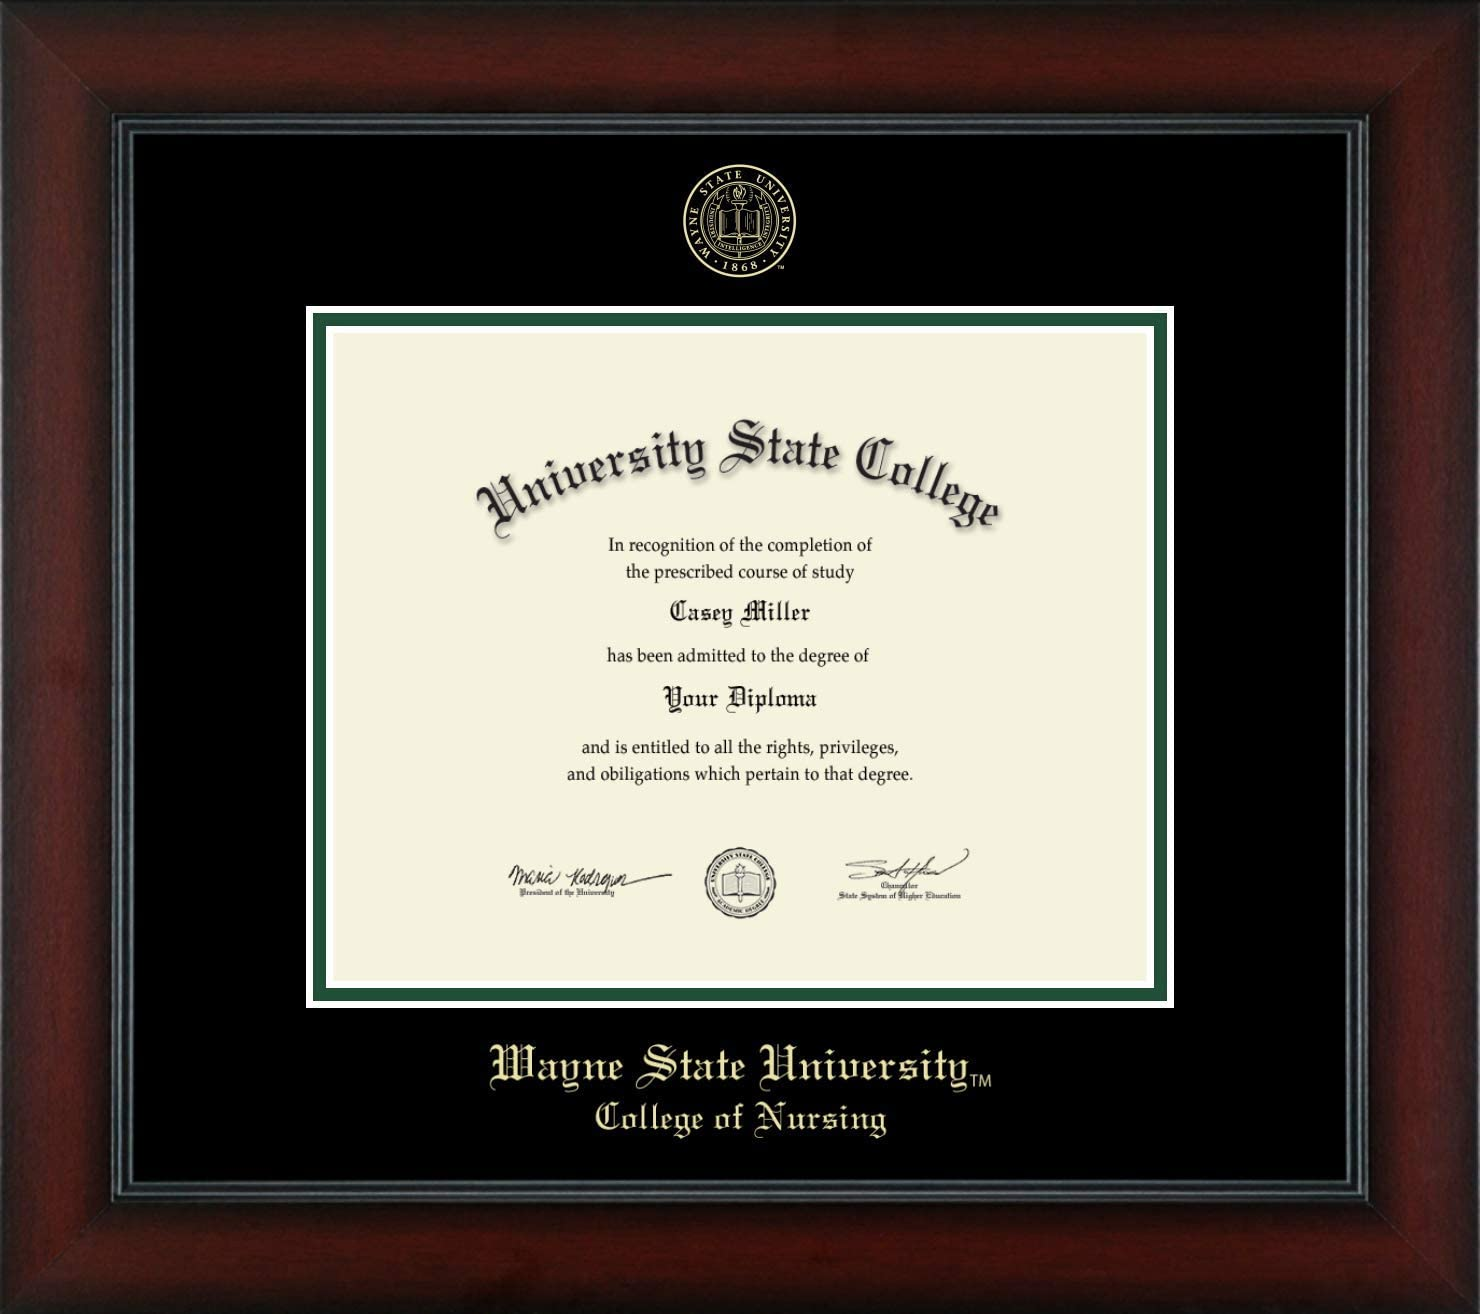 Wayne State University College Of Nursing Officially Licensed Gold Embossed Diploma Frame Diploma Size 10 X 8